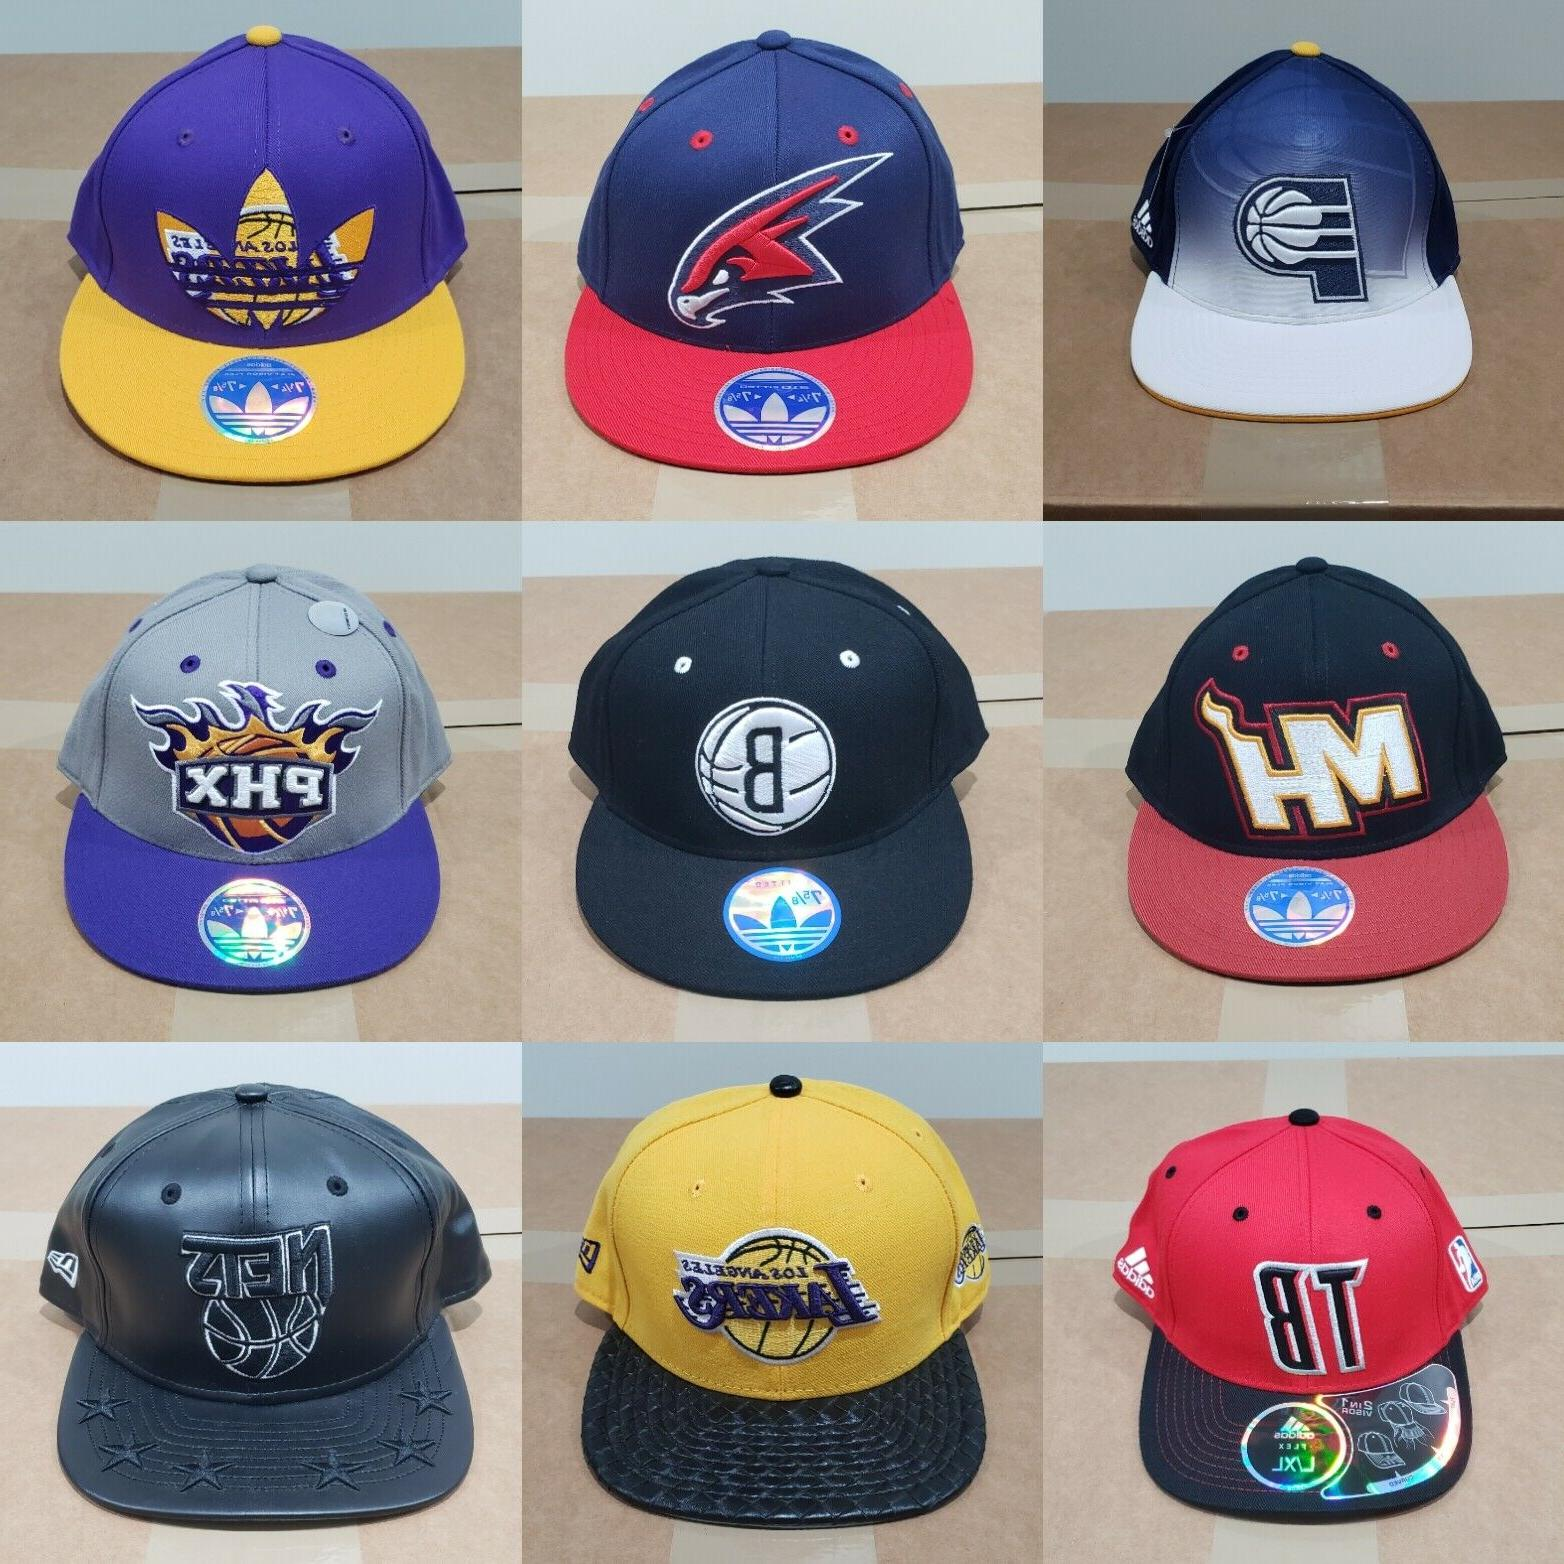 All Teams Logos & Fitted